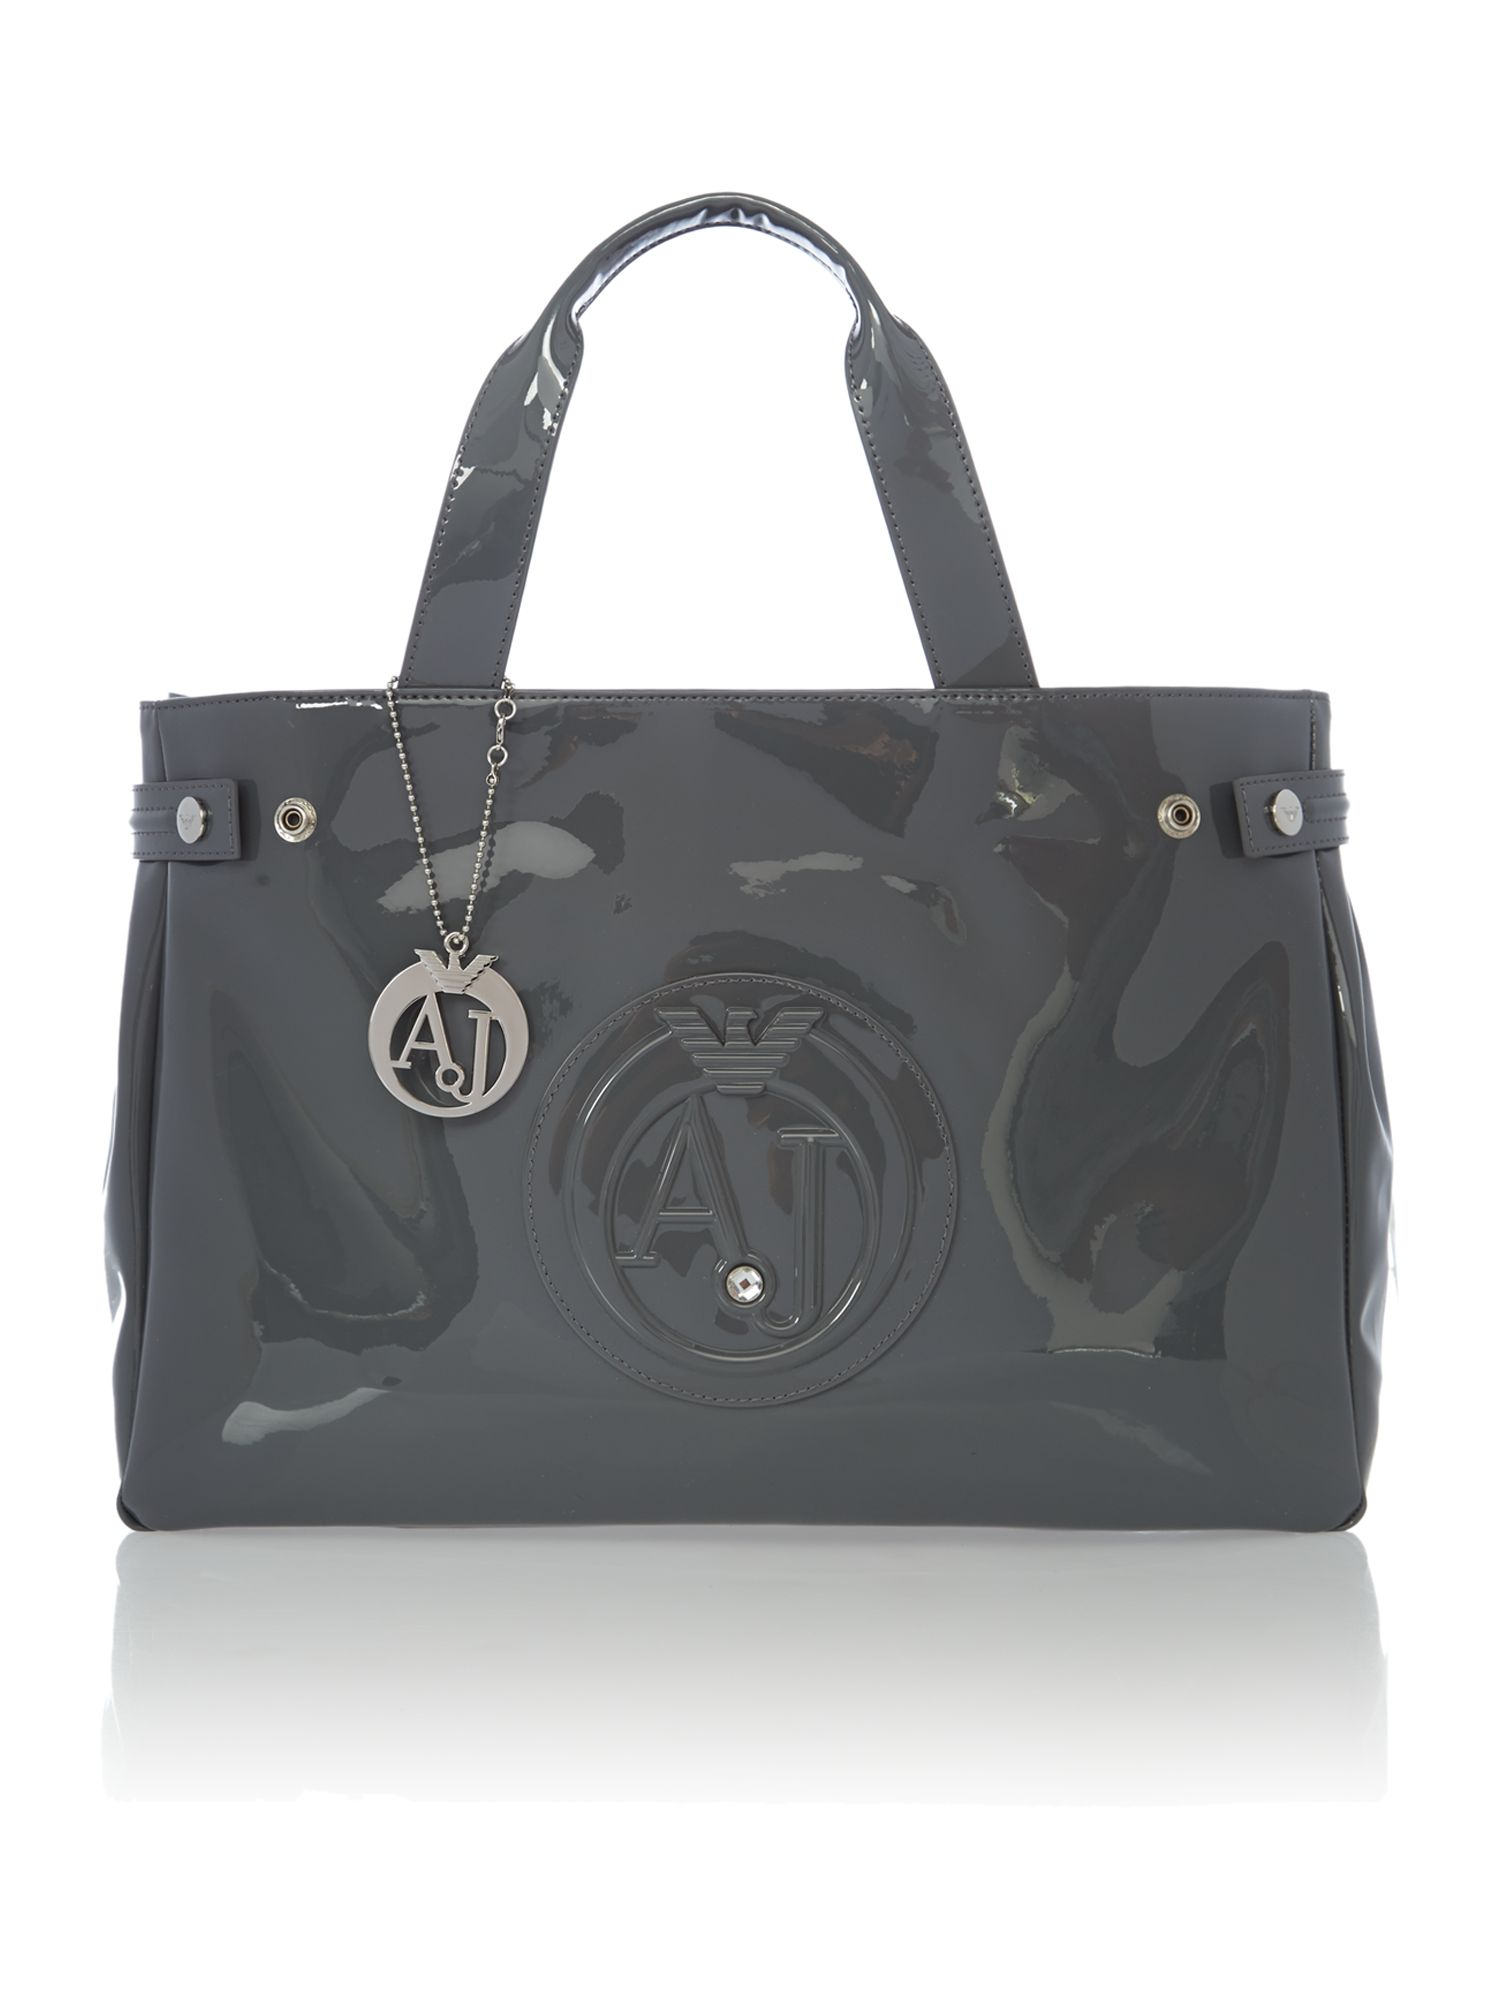 Grey patent medium tote bag